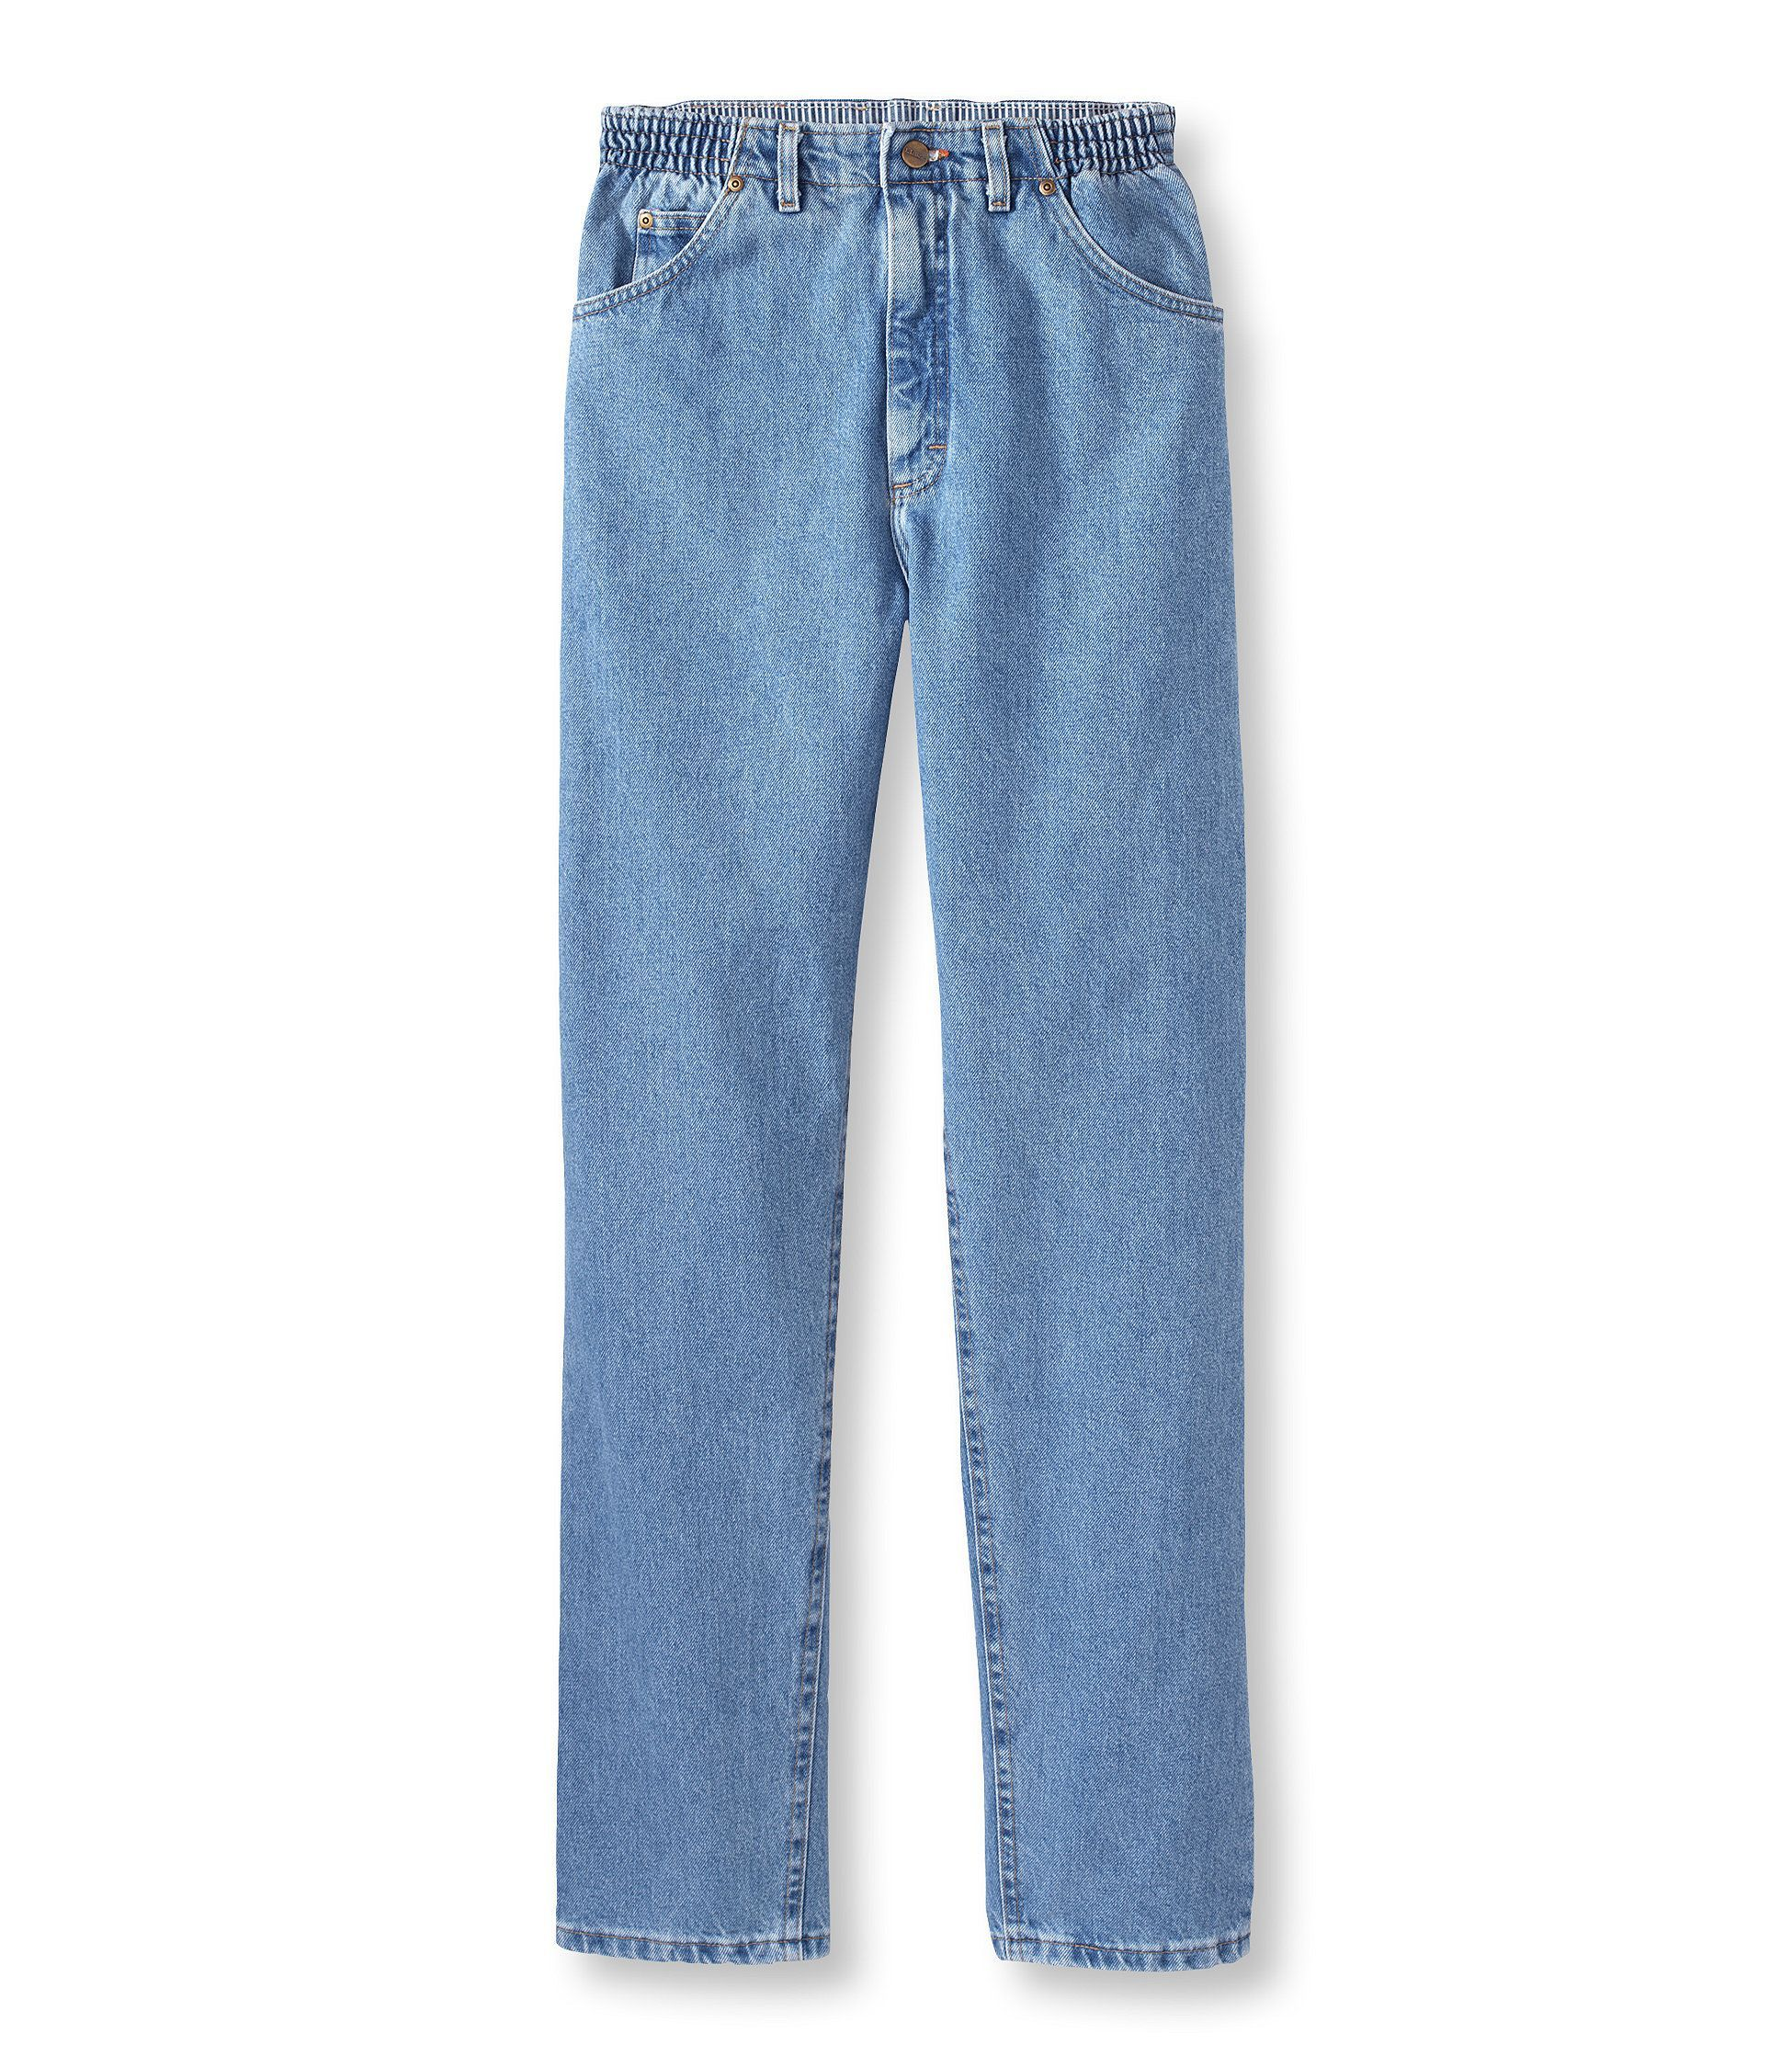 2020 New Women Jeans Mens Flared Trousers Loose Pants Fashion High Waisted Work Pants Long Torso Swimsuits